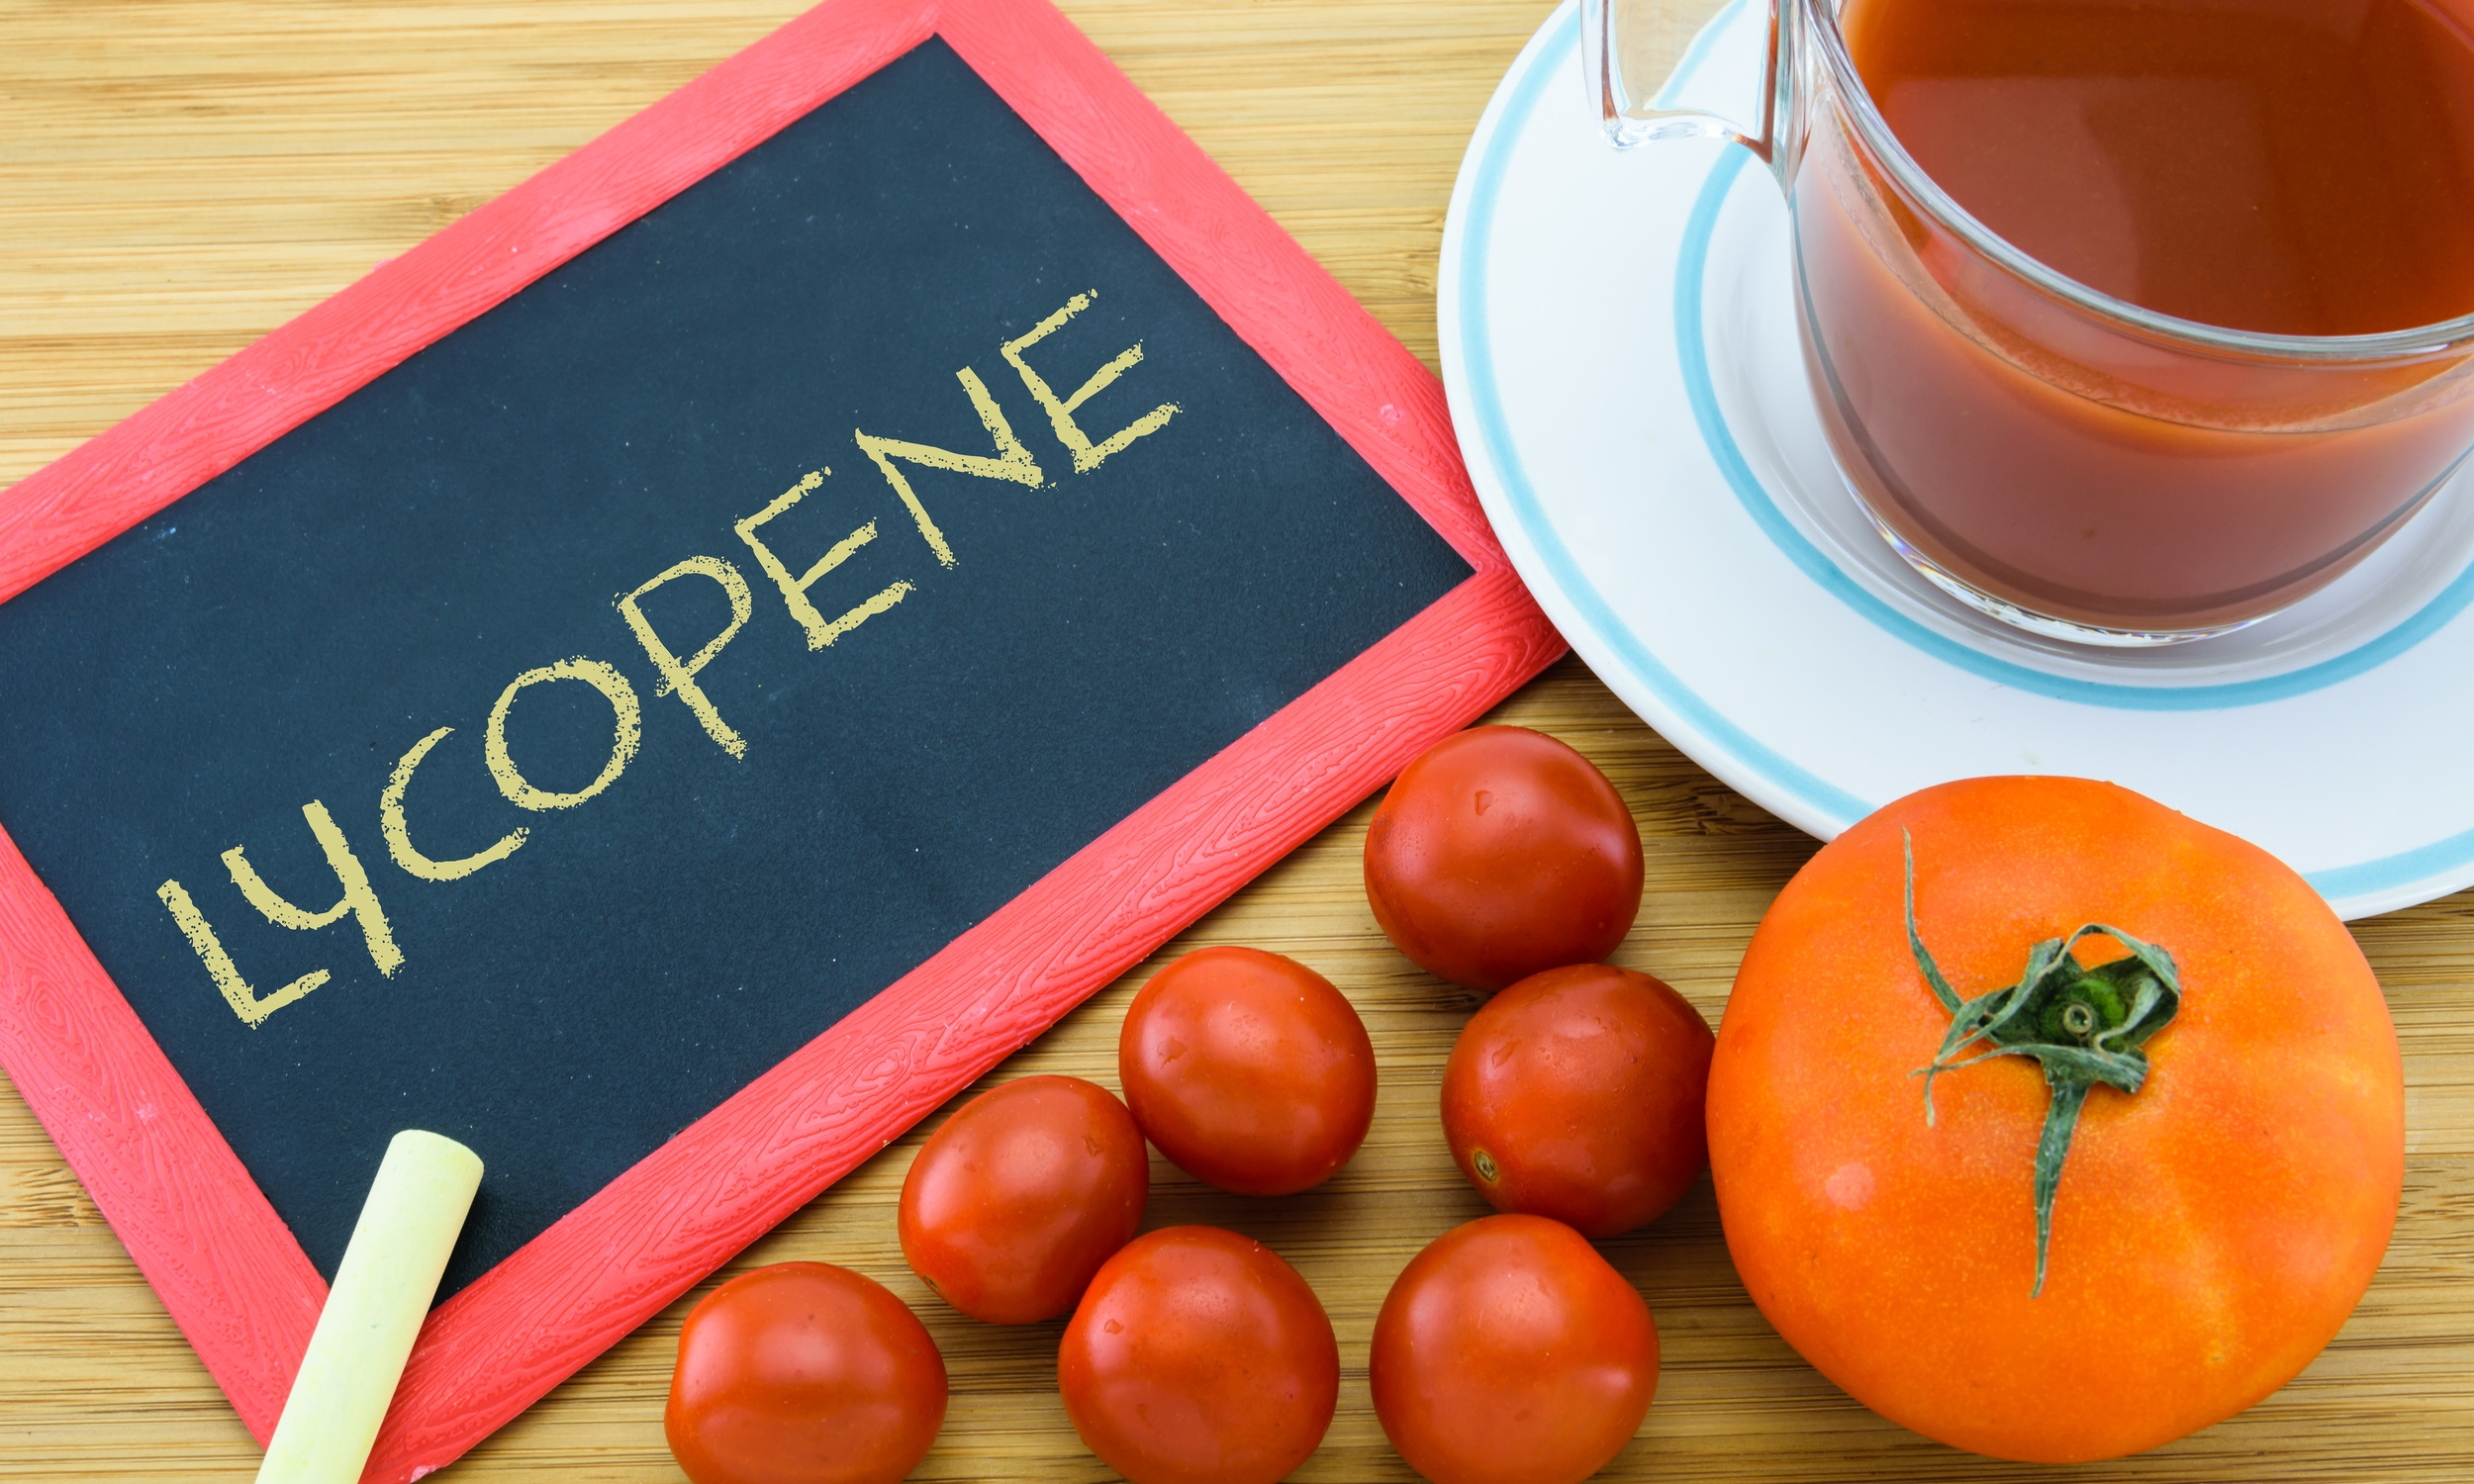 Tomatoes, Lycopene, And Your Health